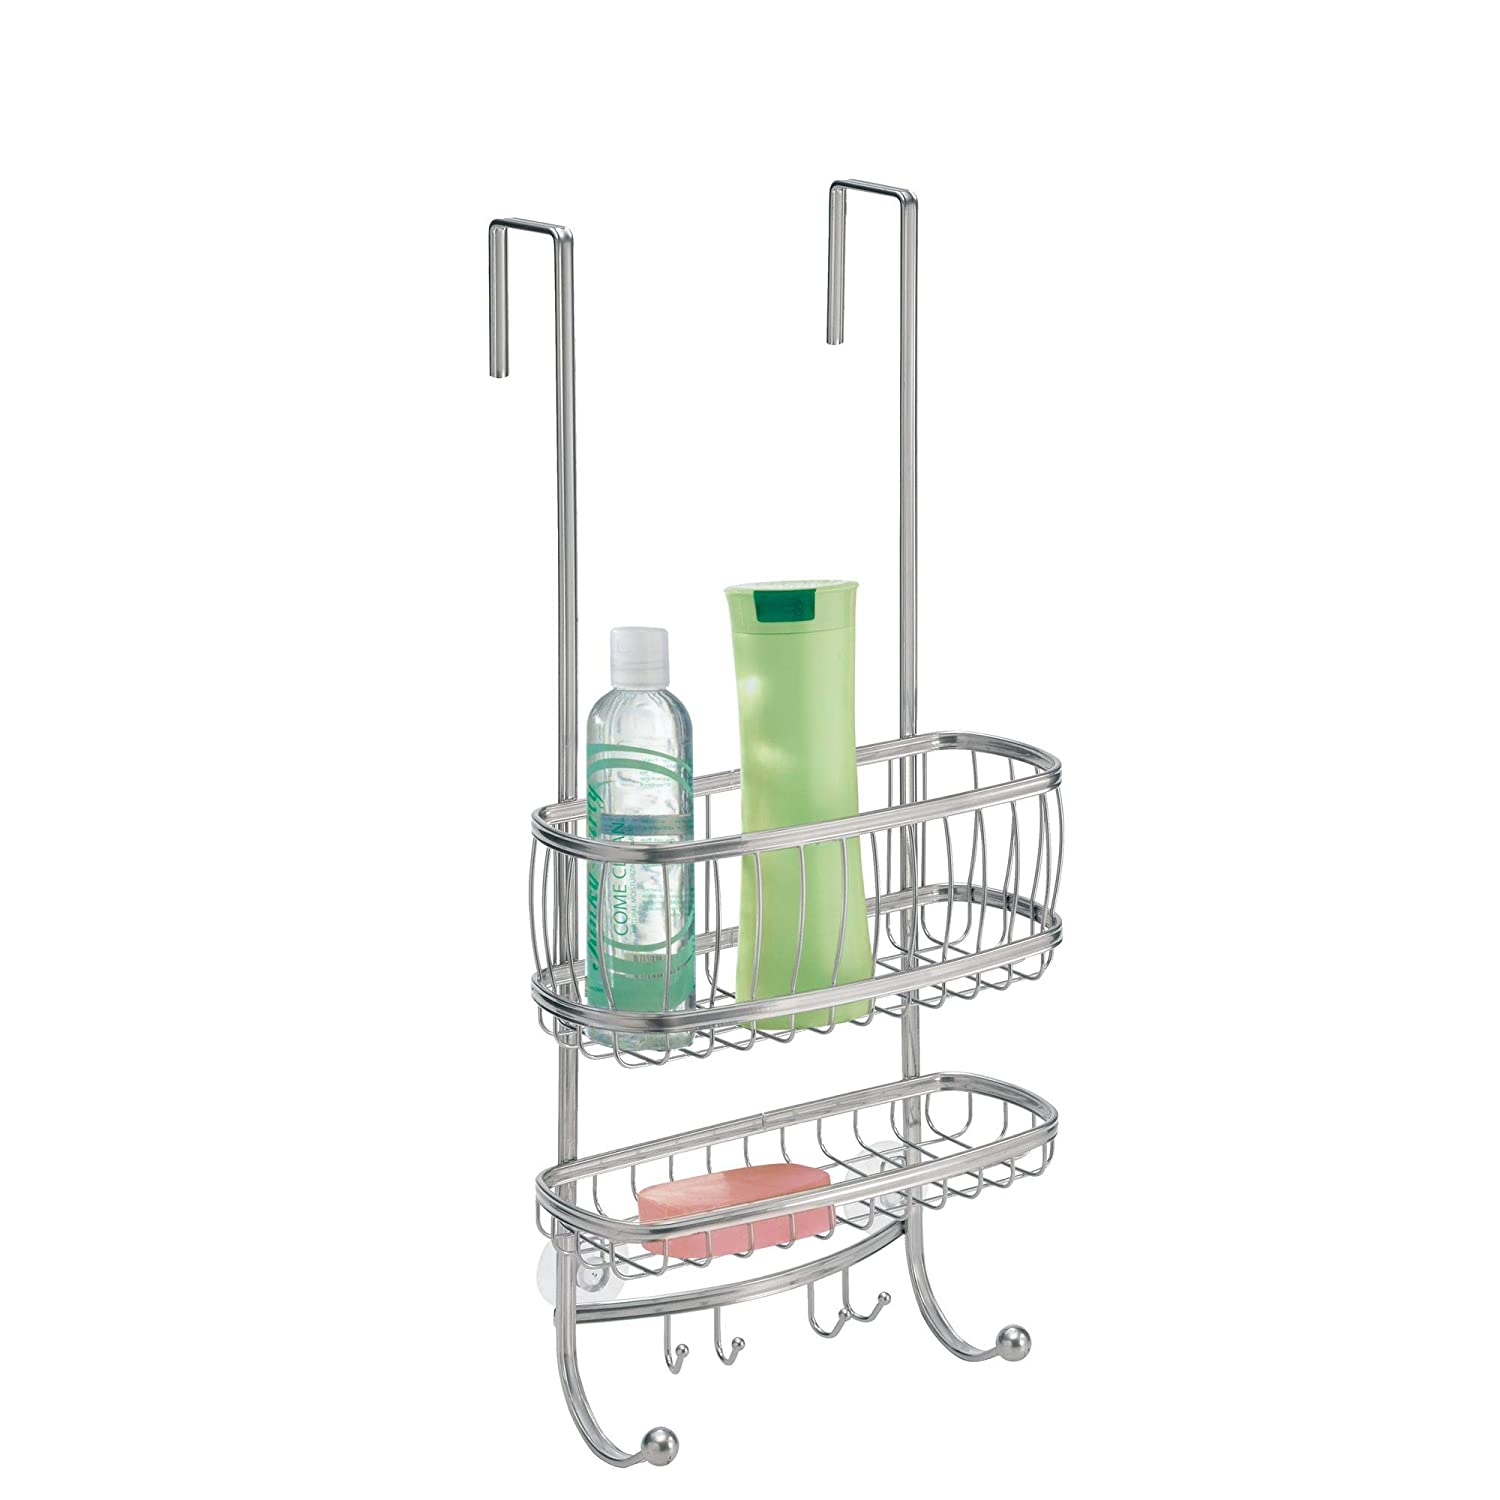 Amazon.com: InterDesign York Lyra - Bathroom Over-The-Door Shower Caddy Silver 10 x 8 21.75 inches: Home \u0026 Kitchen